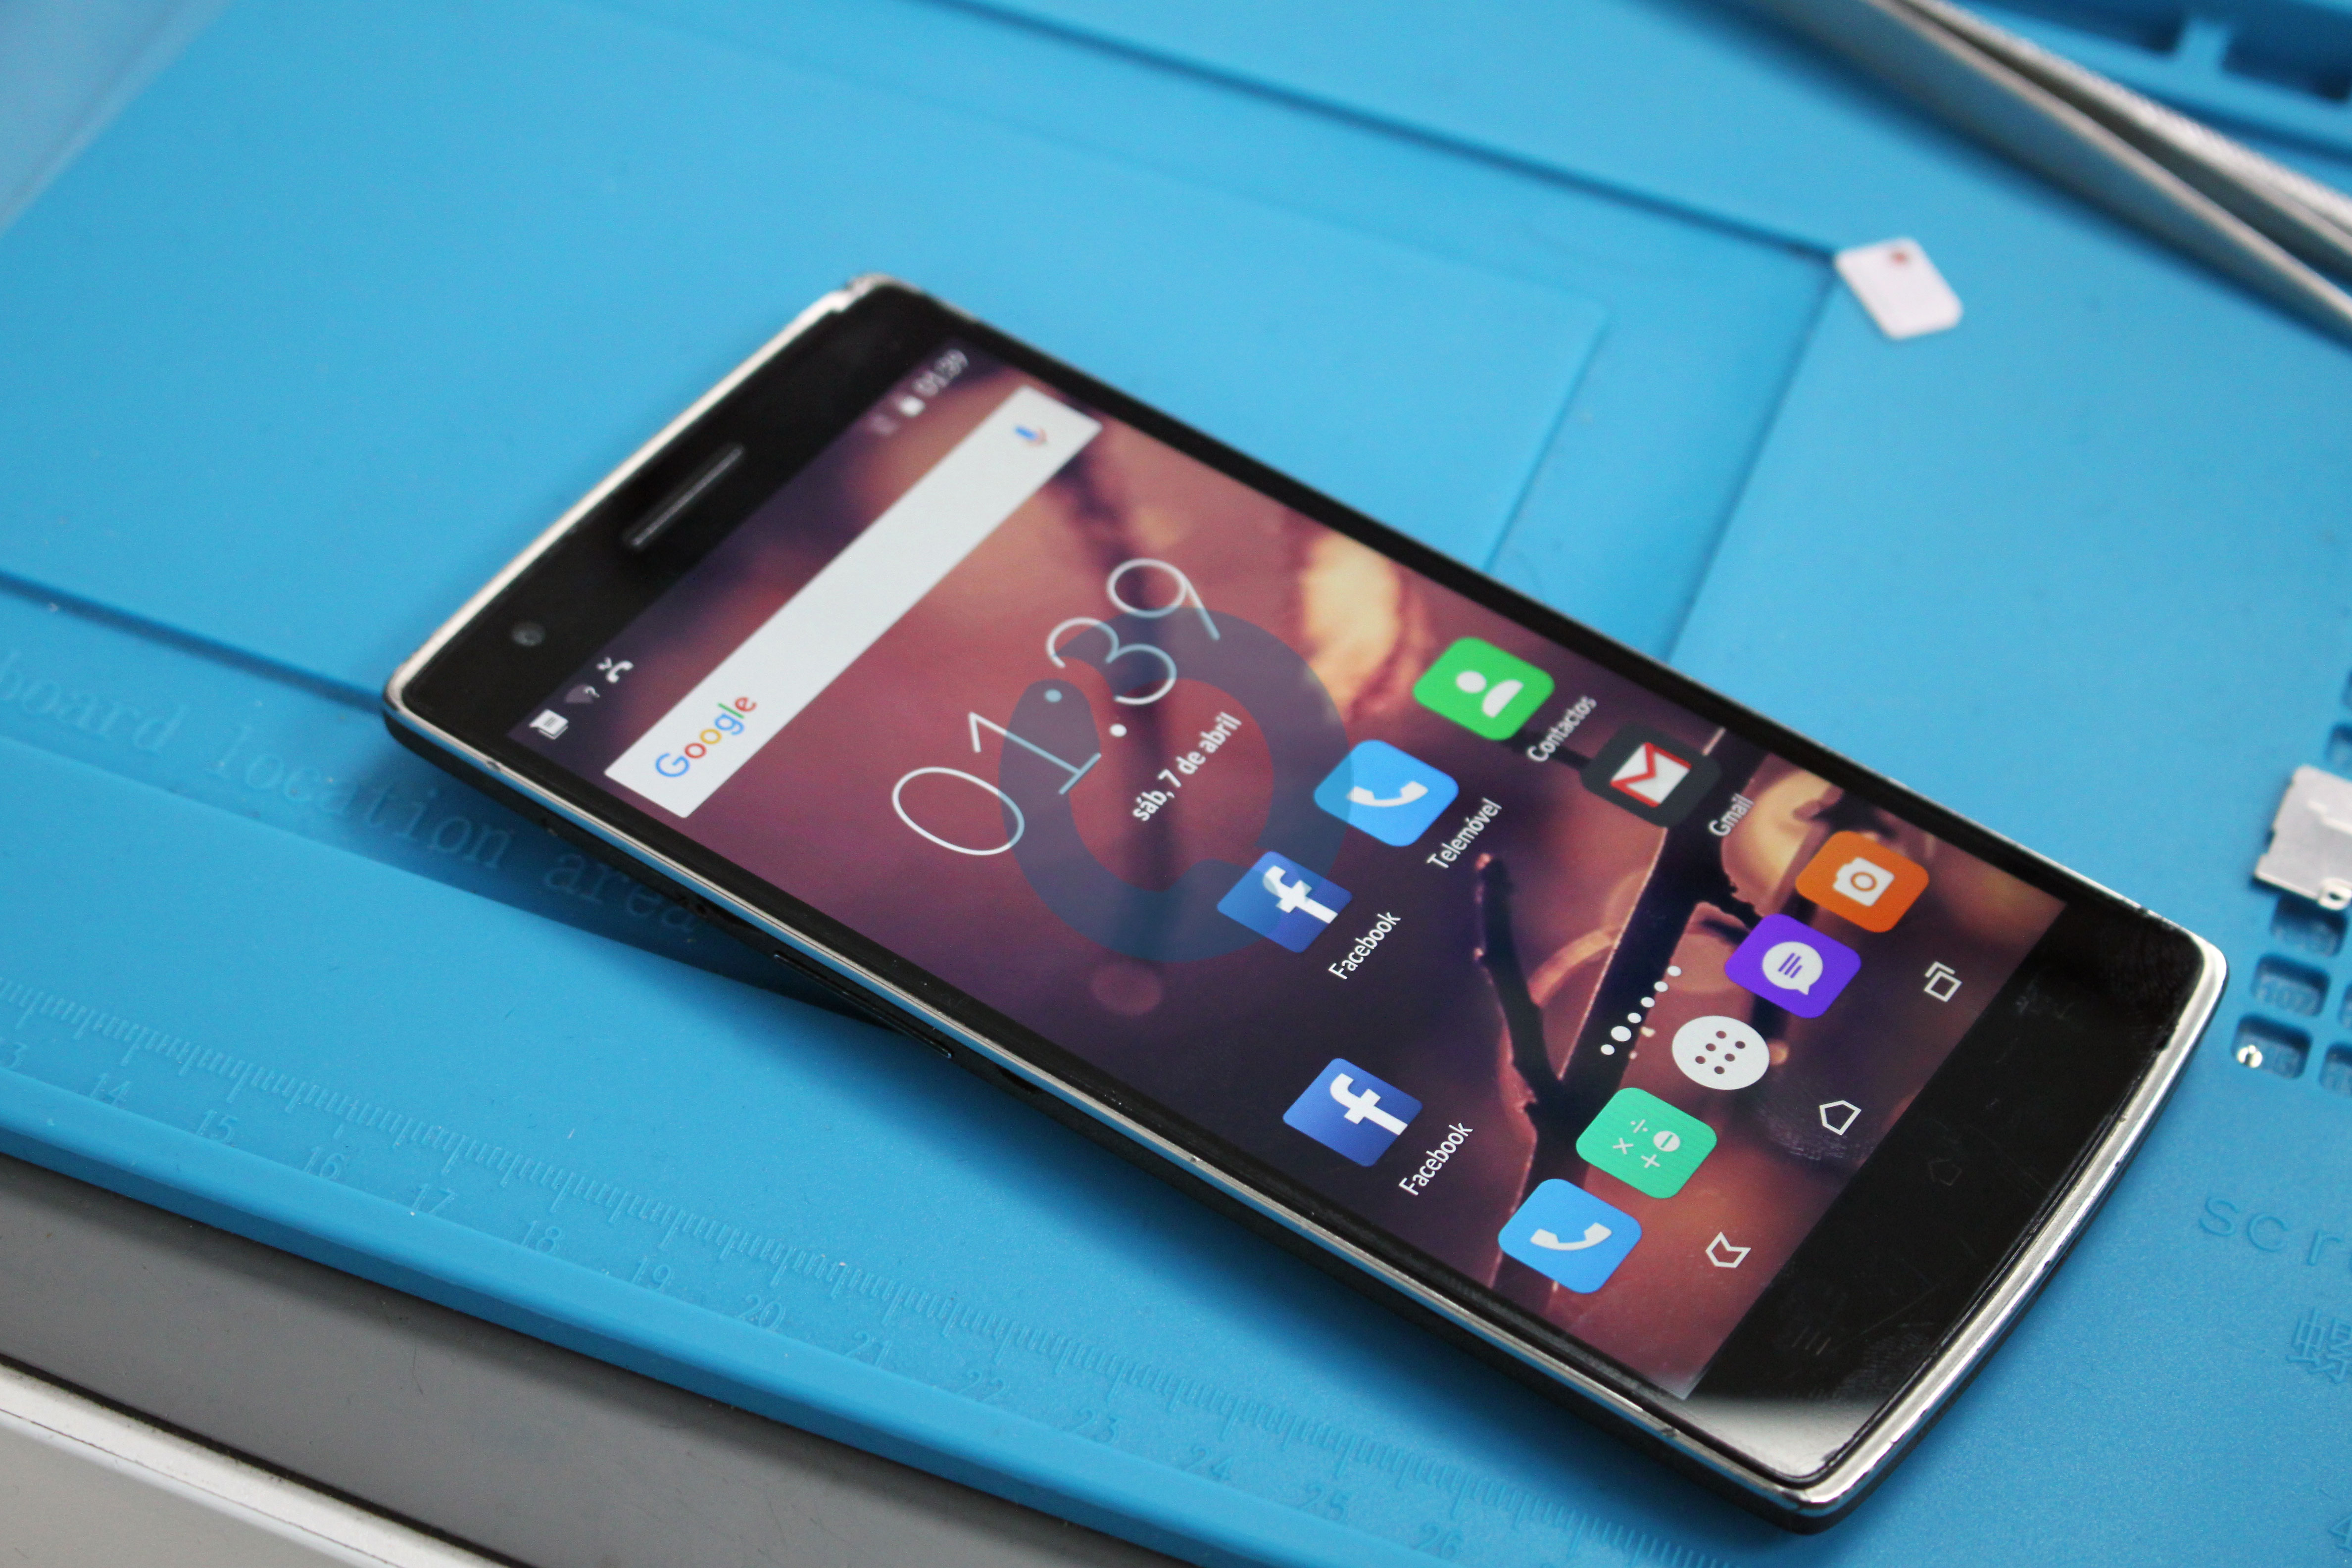 reparacao oneplus One a1001